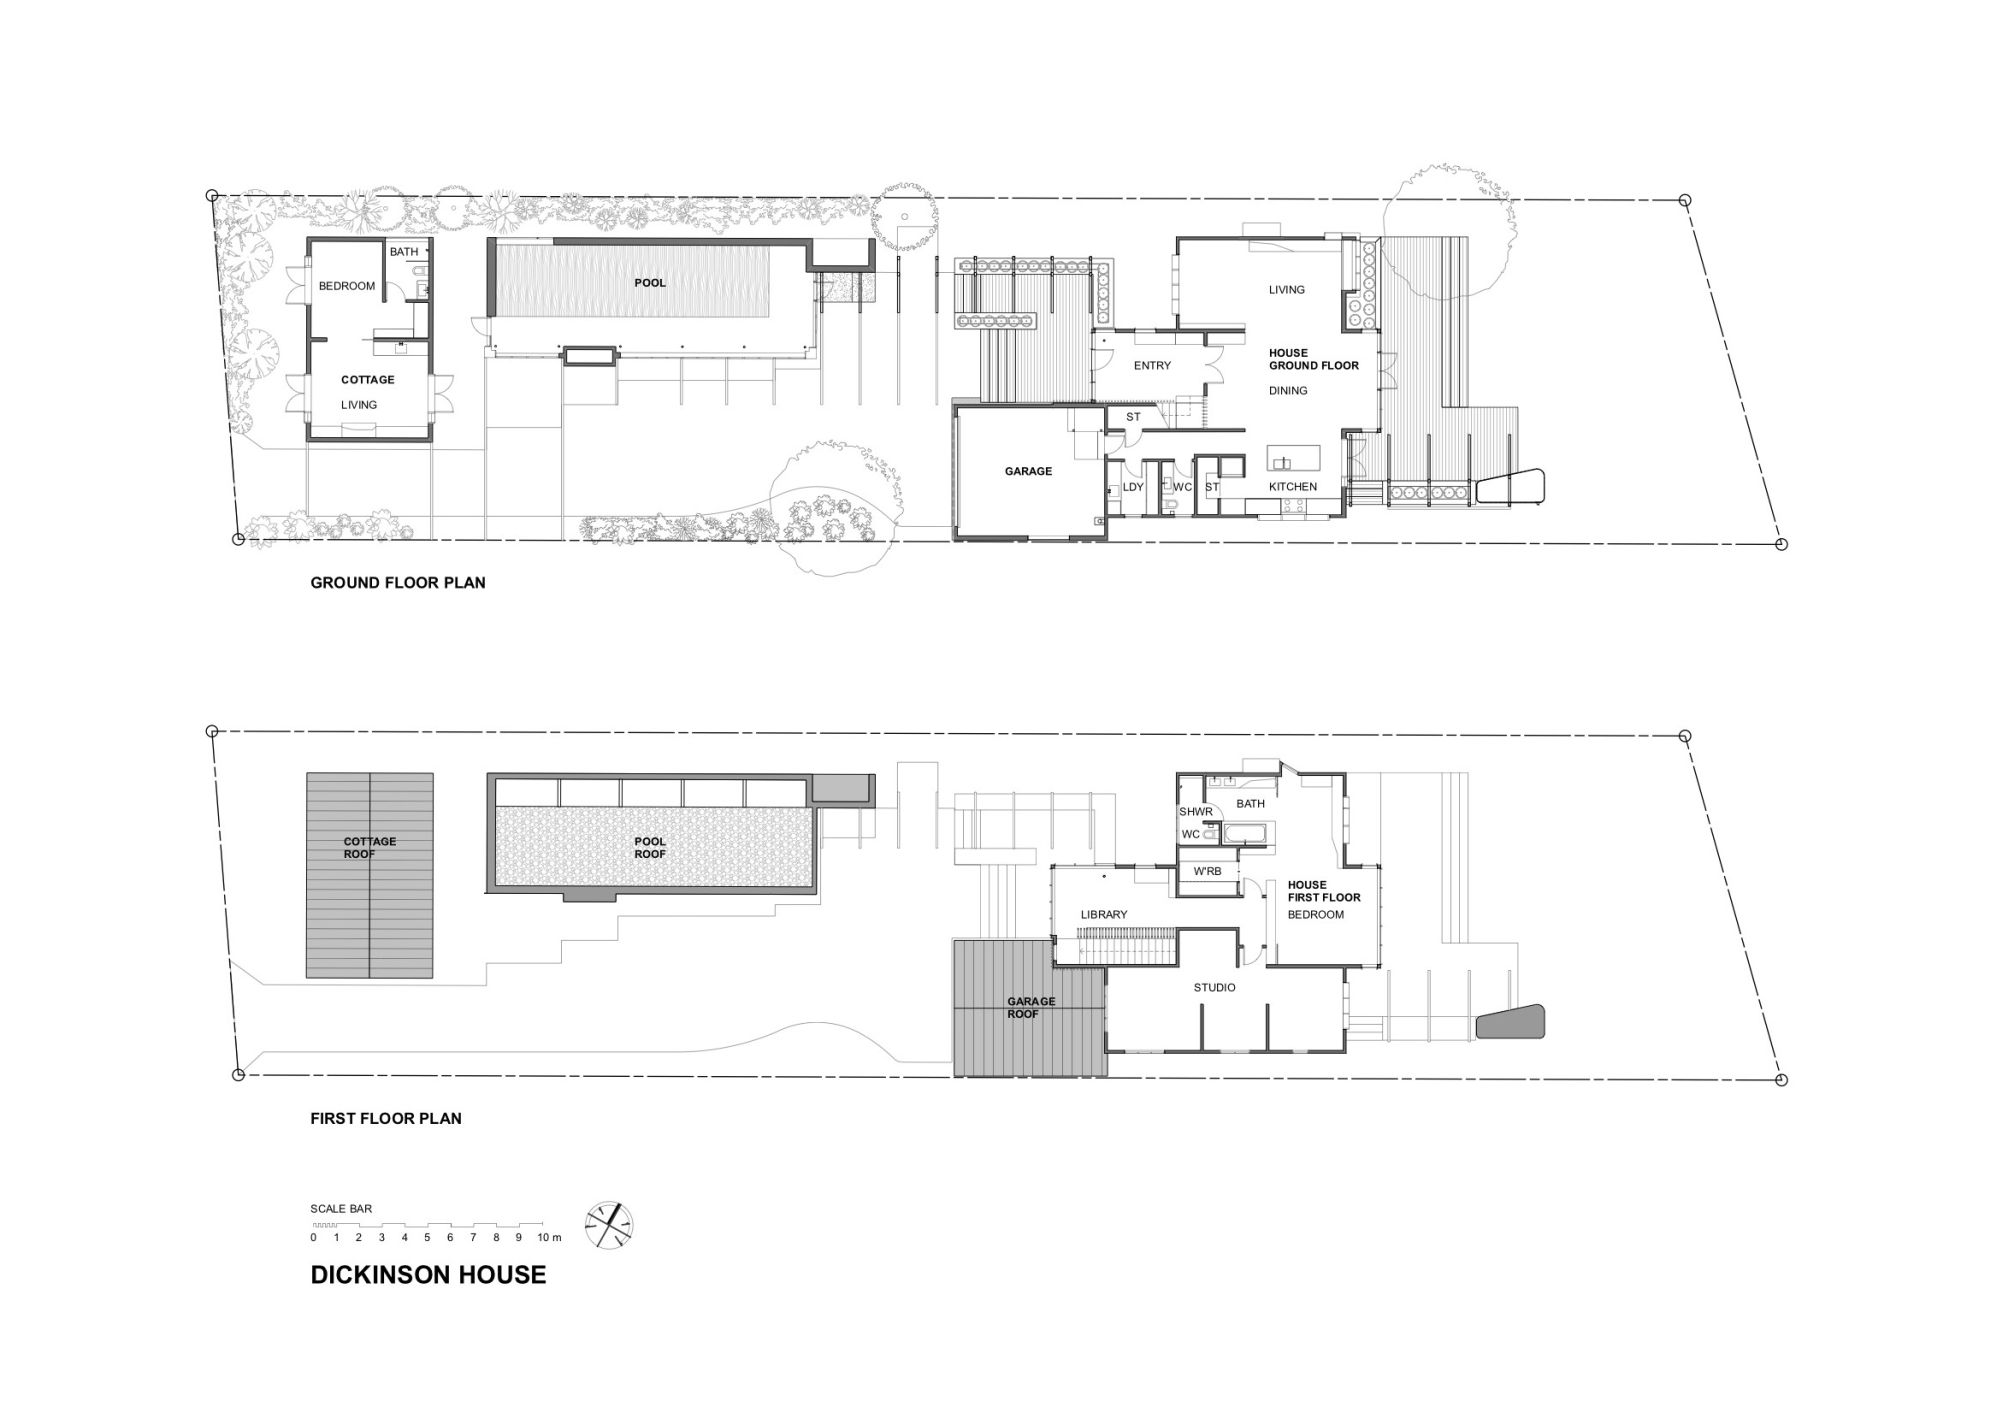 5226b29ce8e44e33d300015a_dickinson-house-studio-pacific-architecture_1573_plans.png (2000×1413)